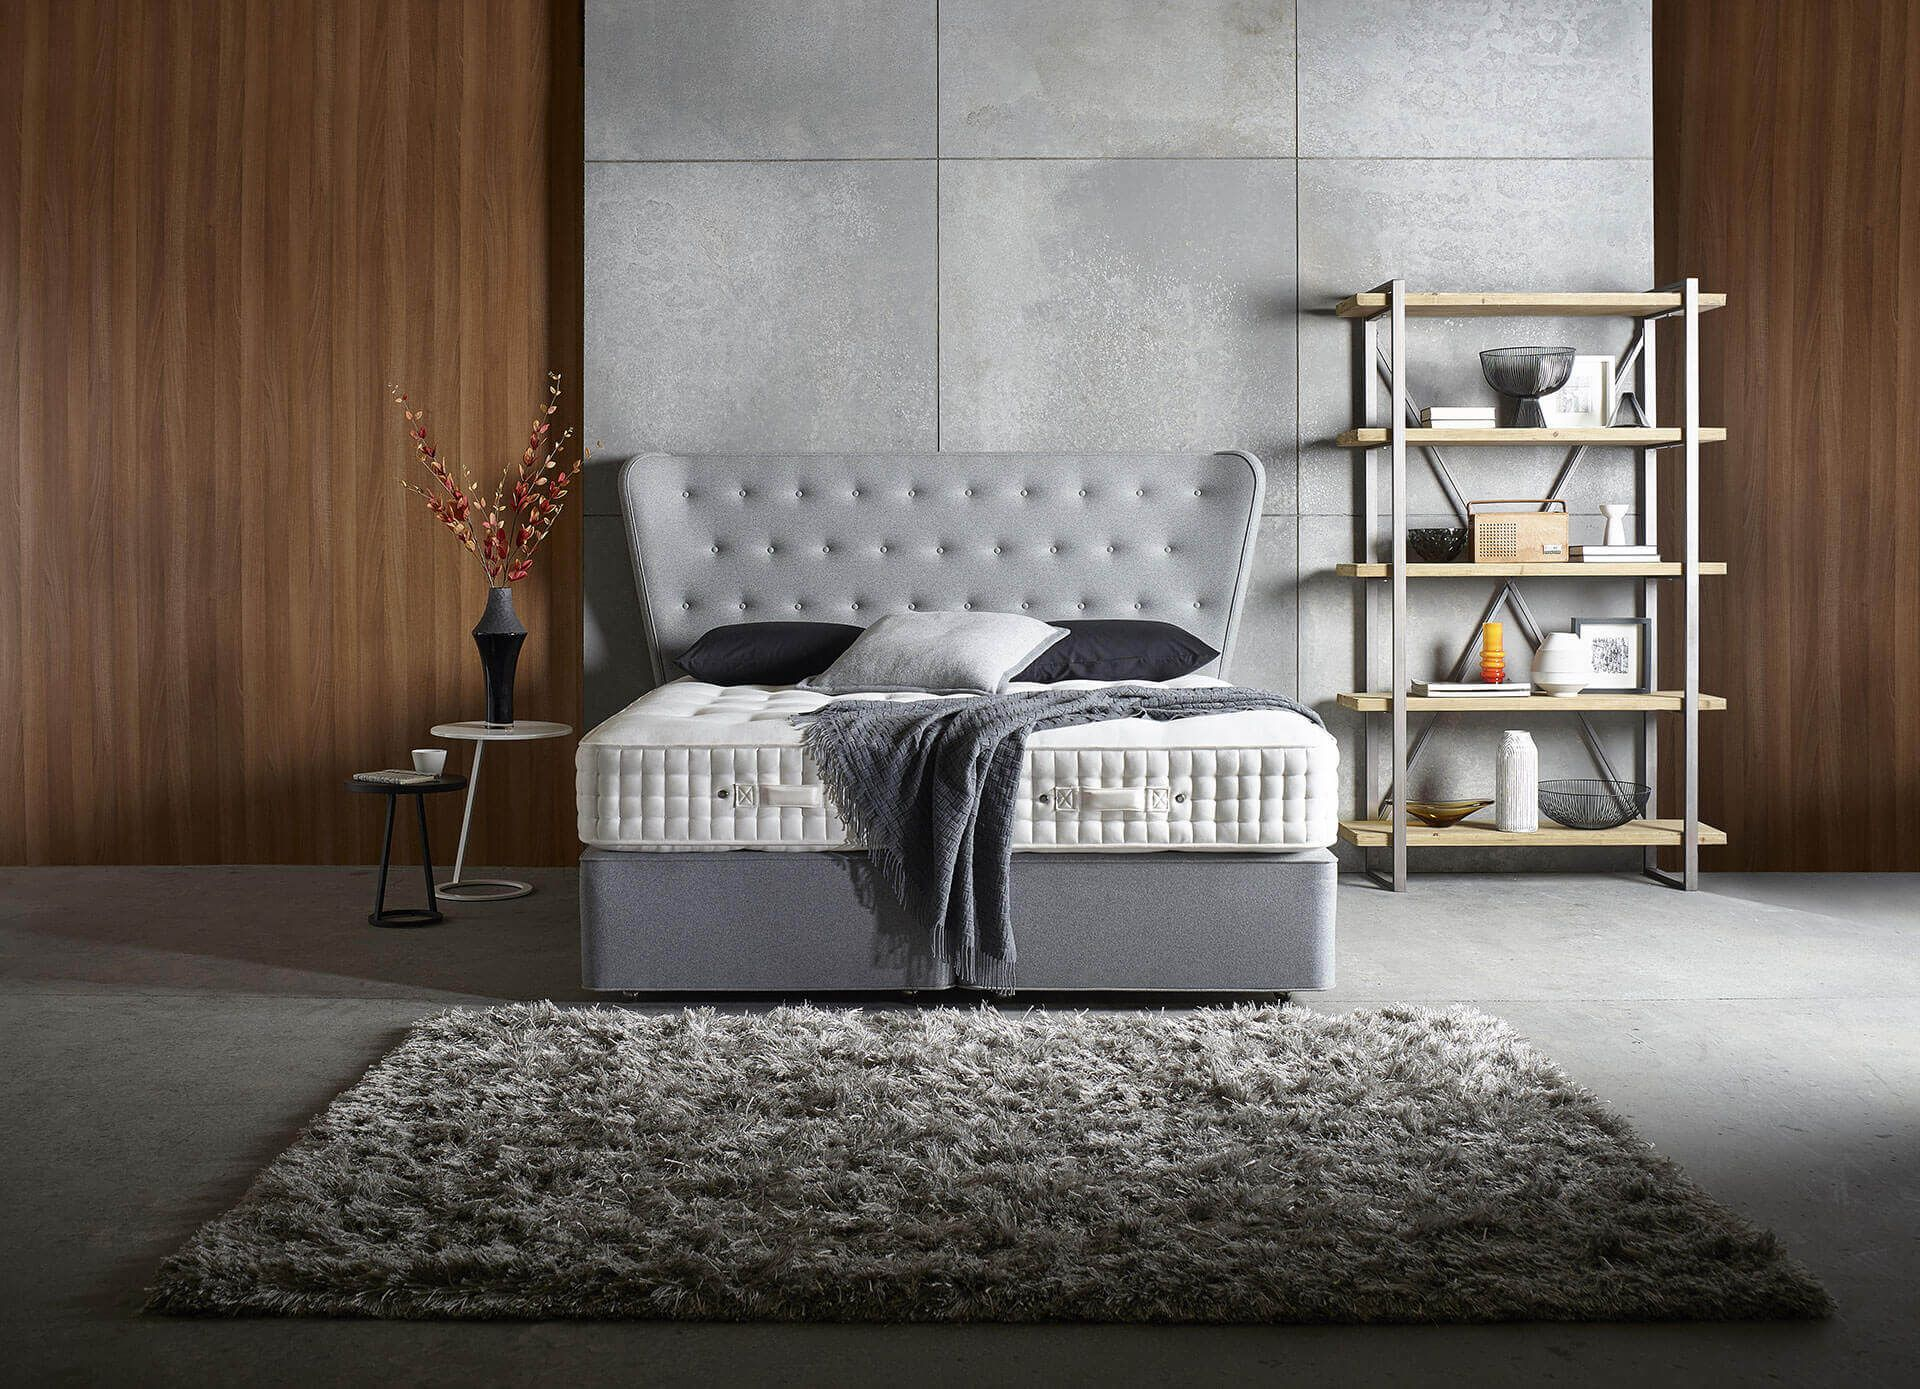 pin by m c on beds pinterest mattress bed mattress and showroom